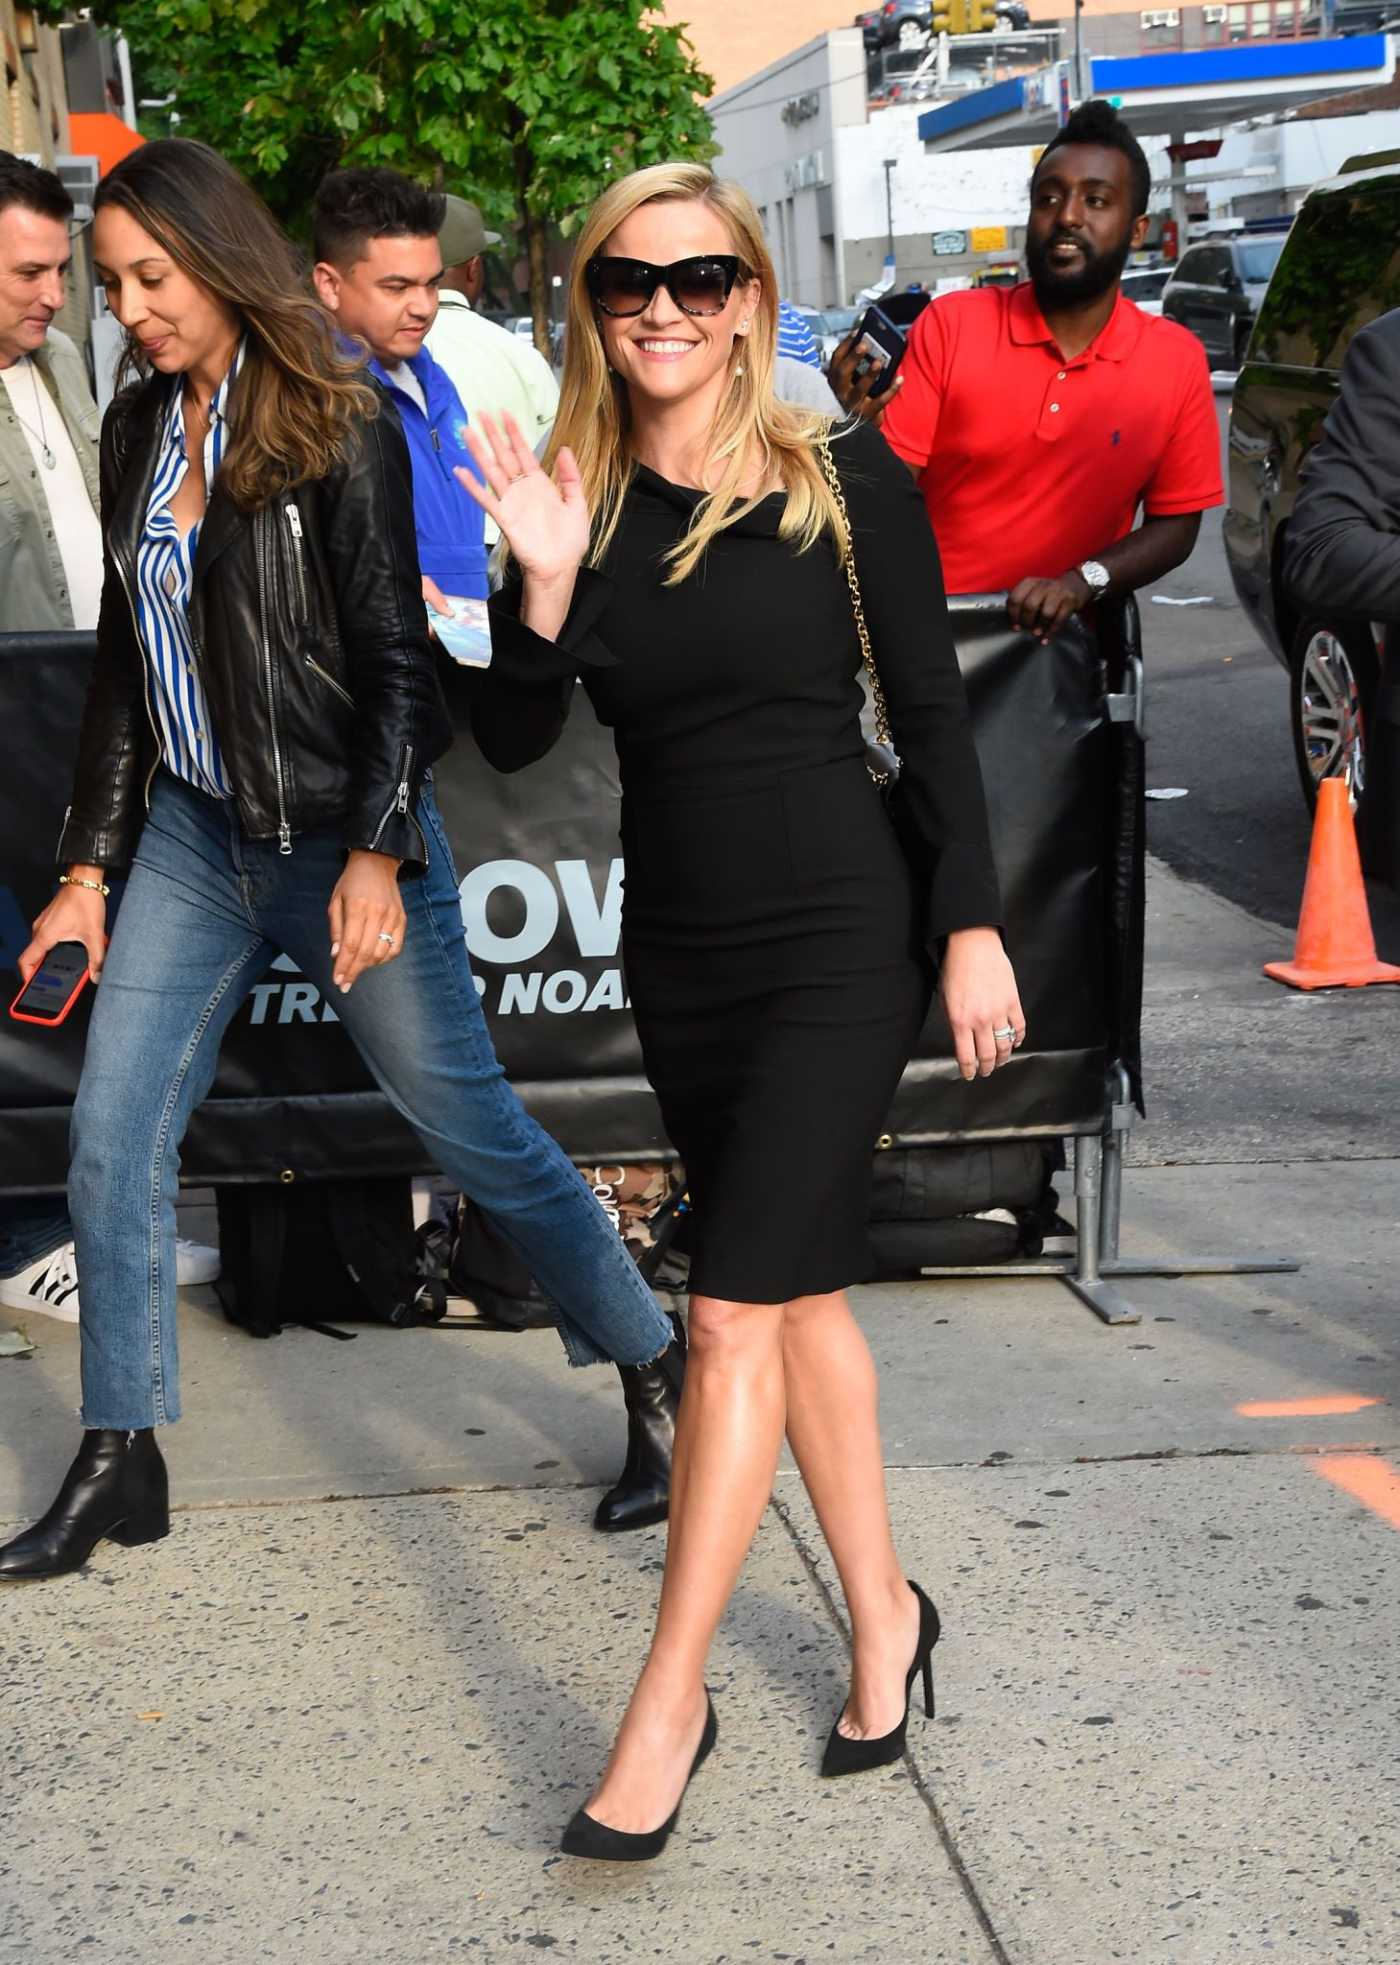 Reese Witherspoon in a Black Dress Arrives at The Daily Show with Trevor Noah in NYC 05/28/2019